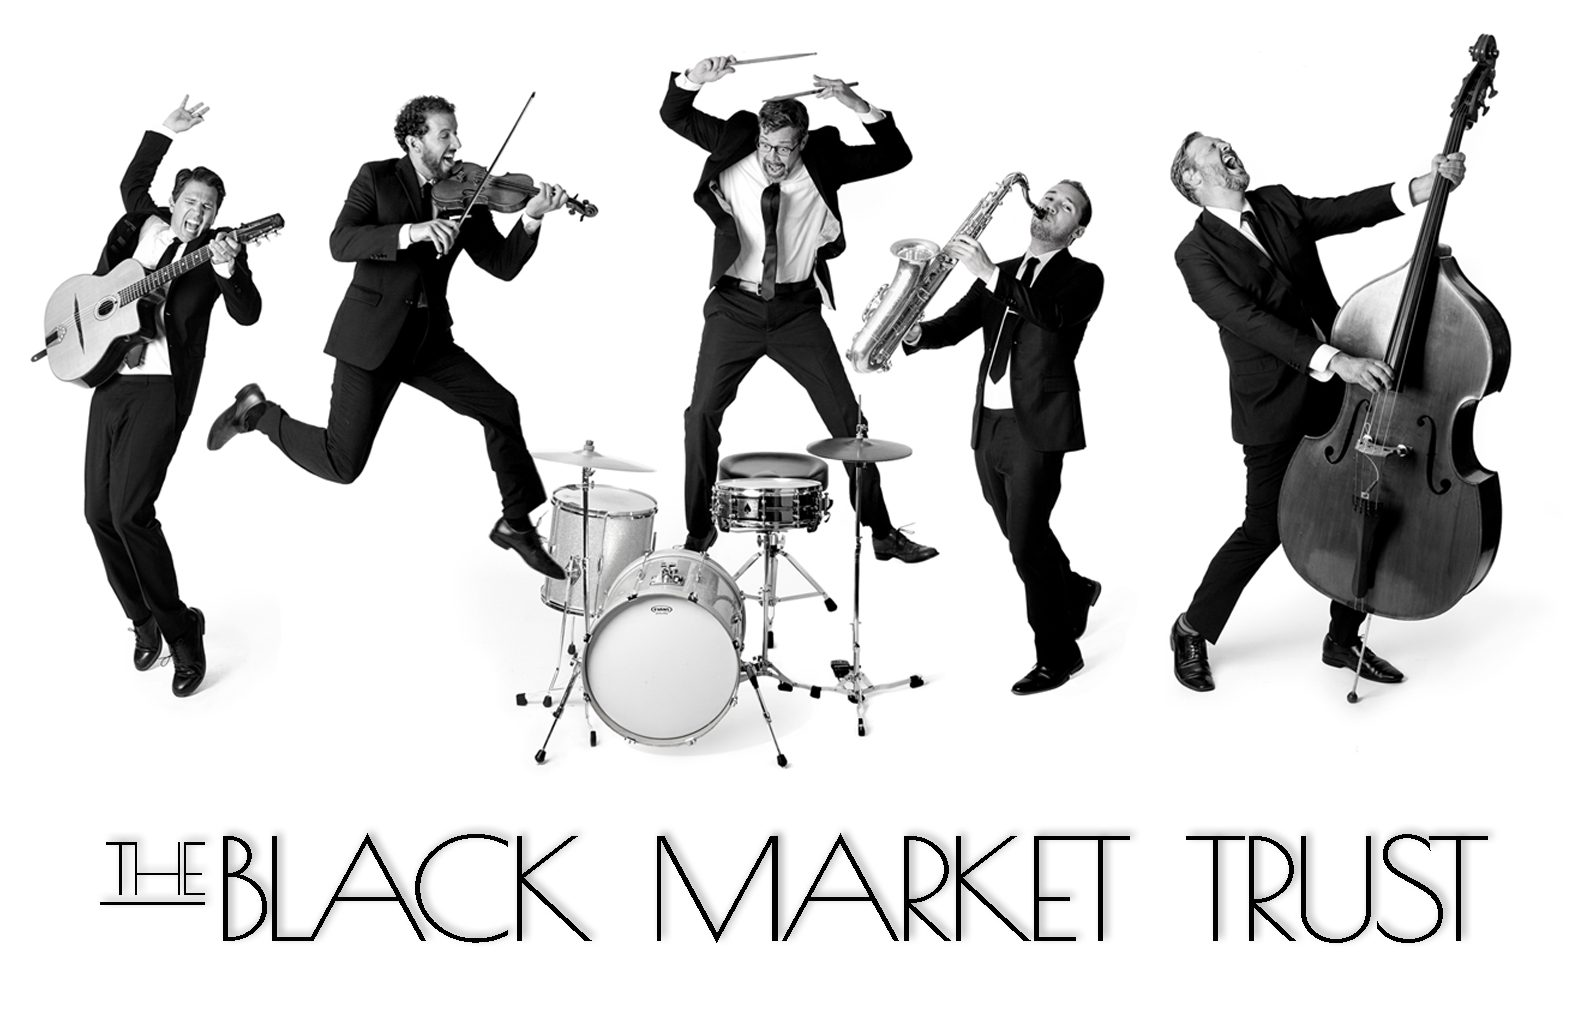 The Black Market Trust